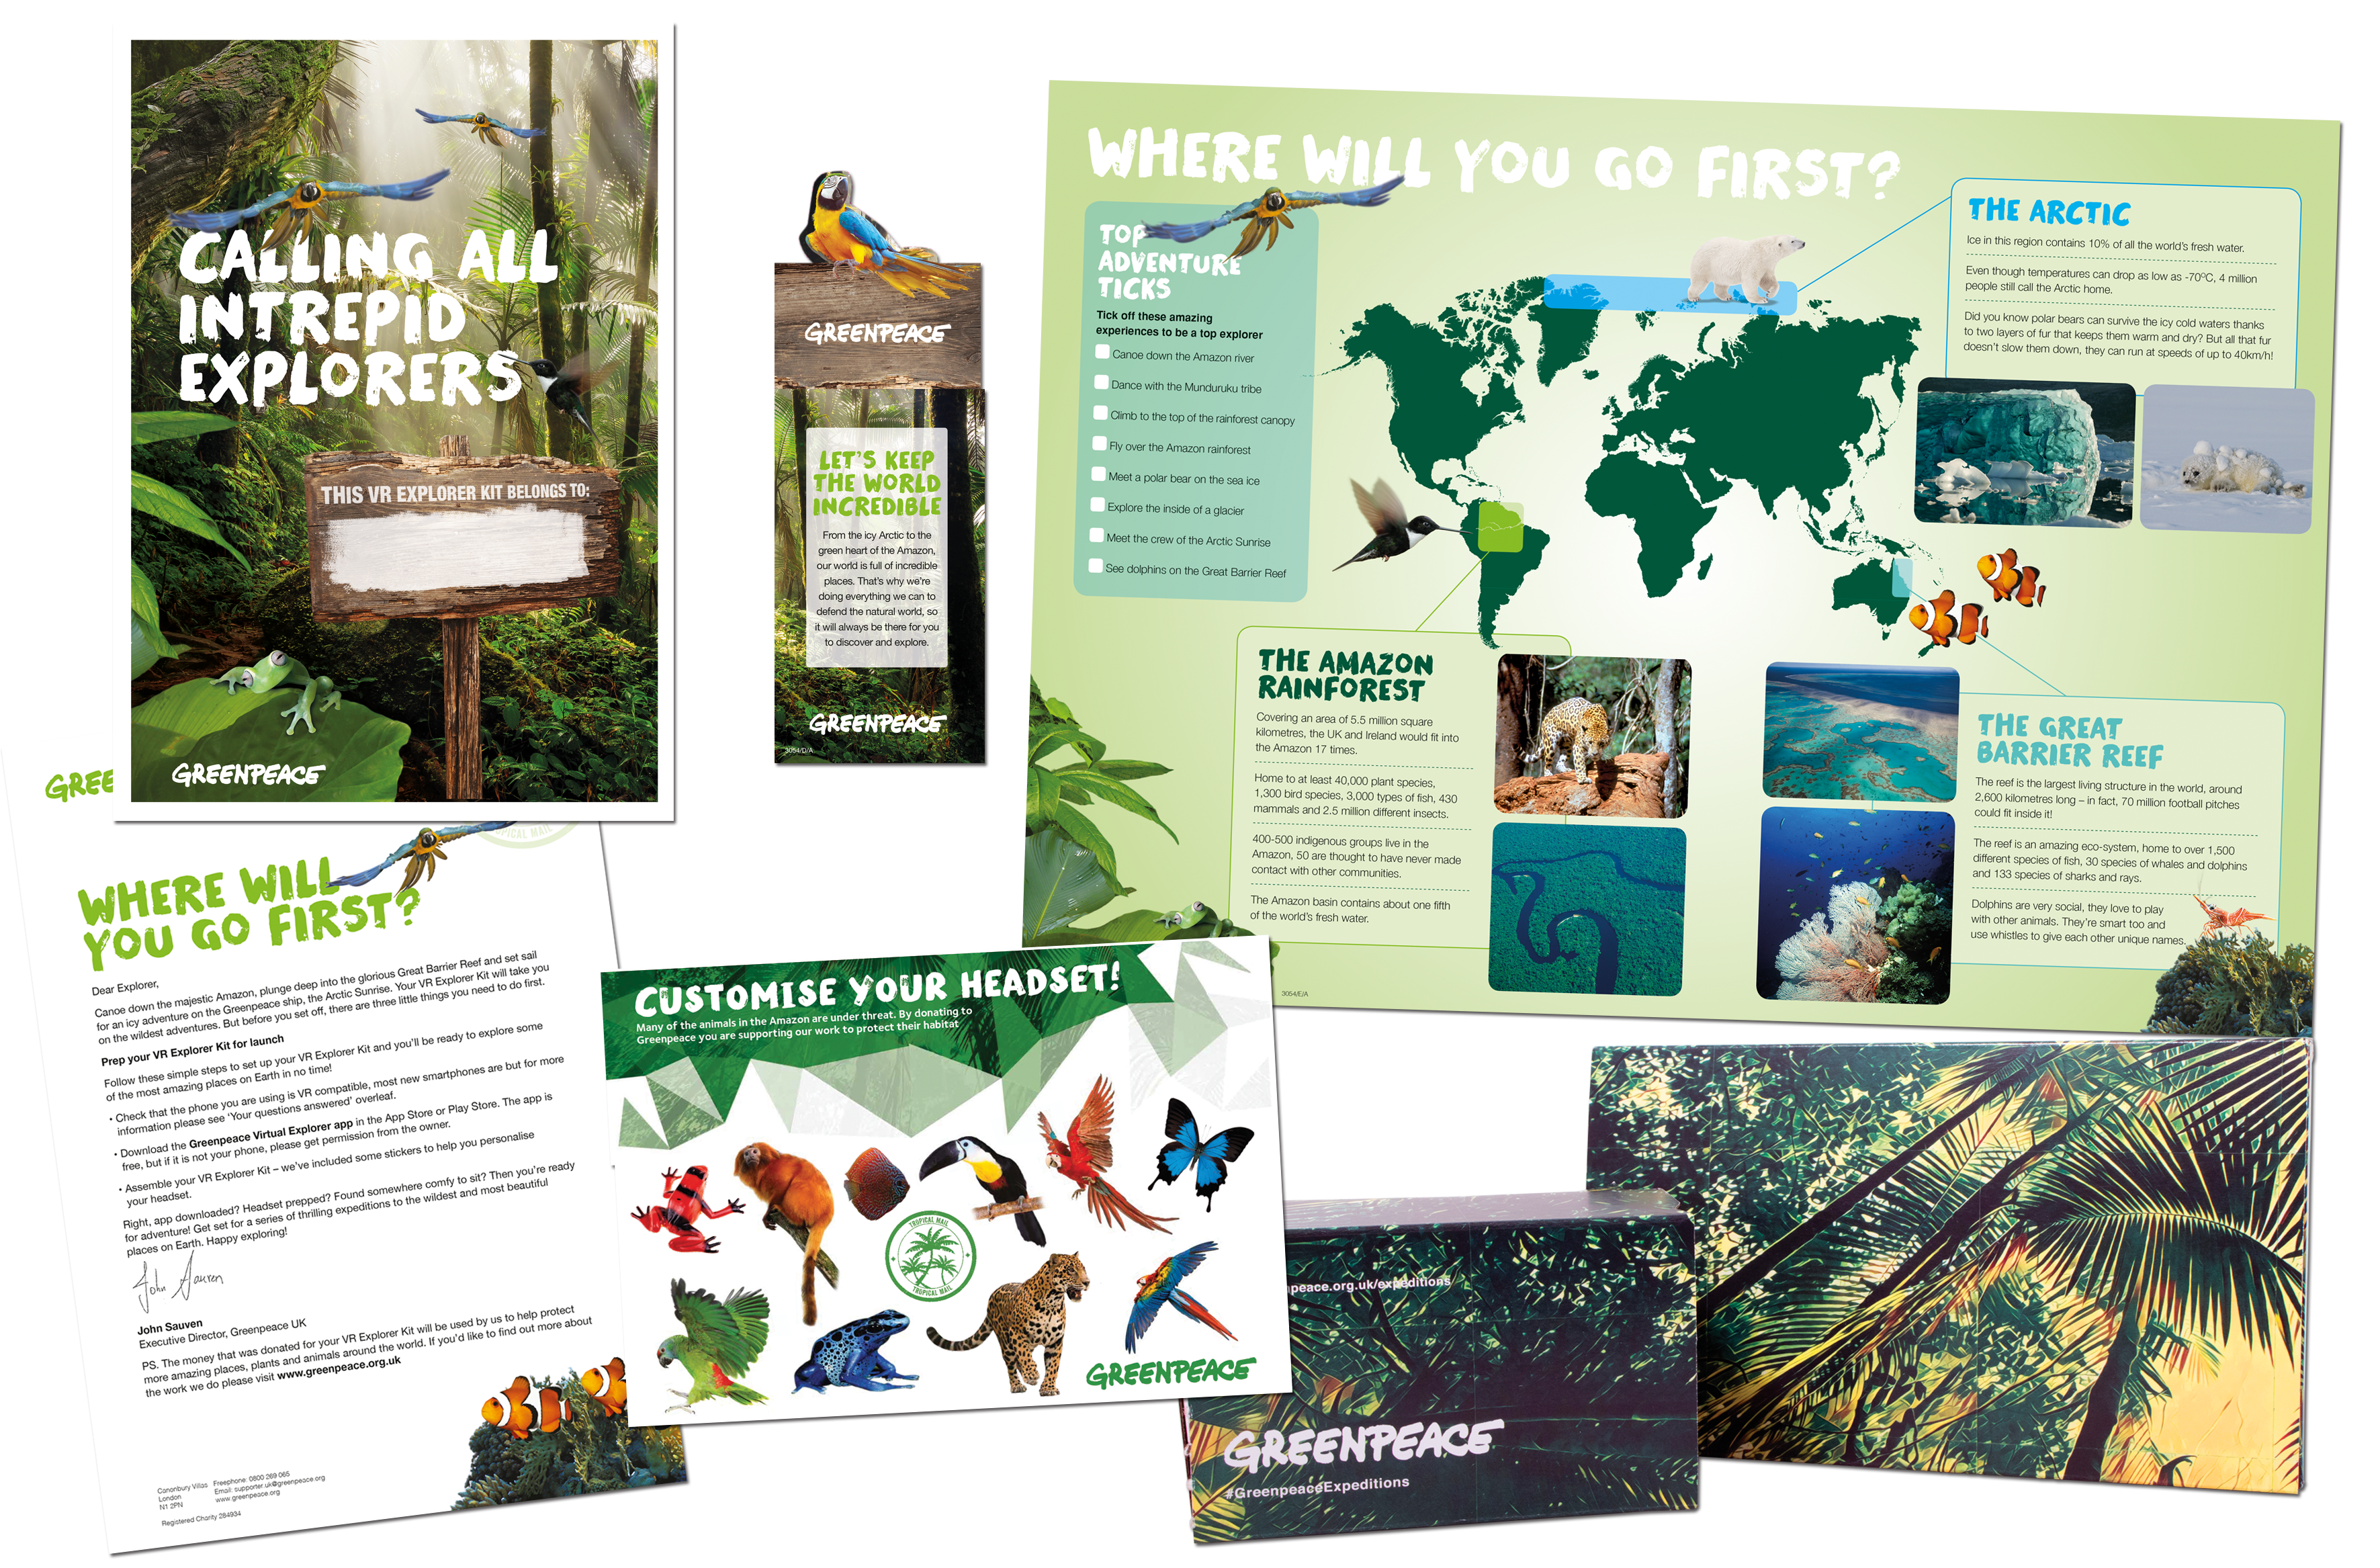 Image for Buy Greenpeace Virtual Reality Explorer Kit